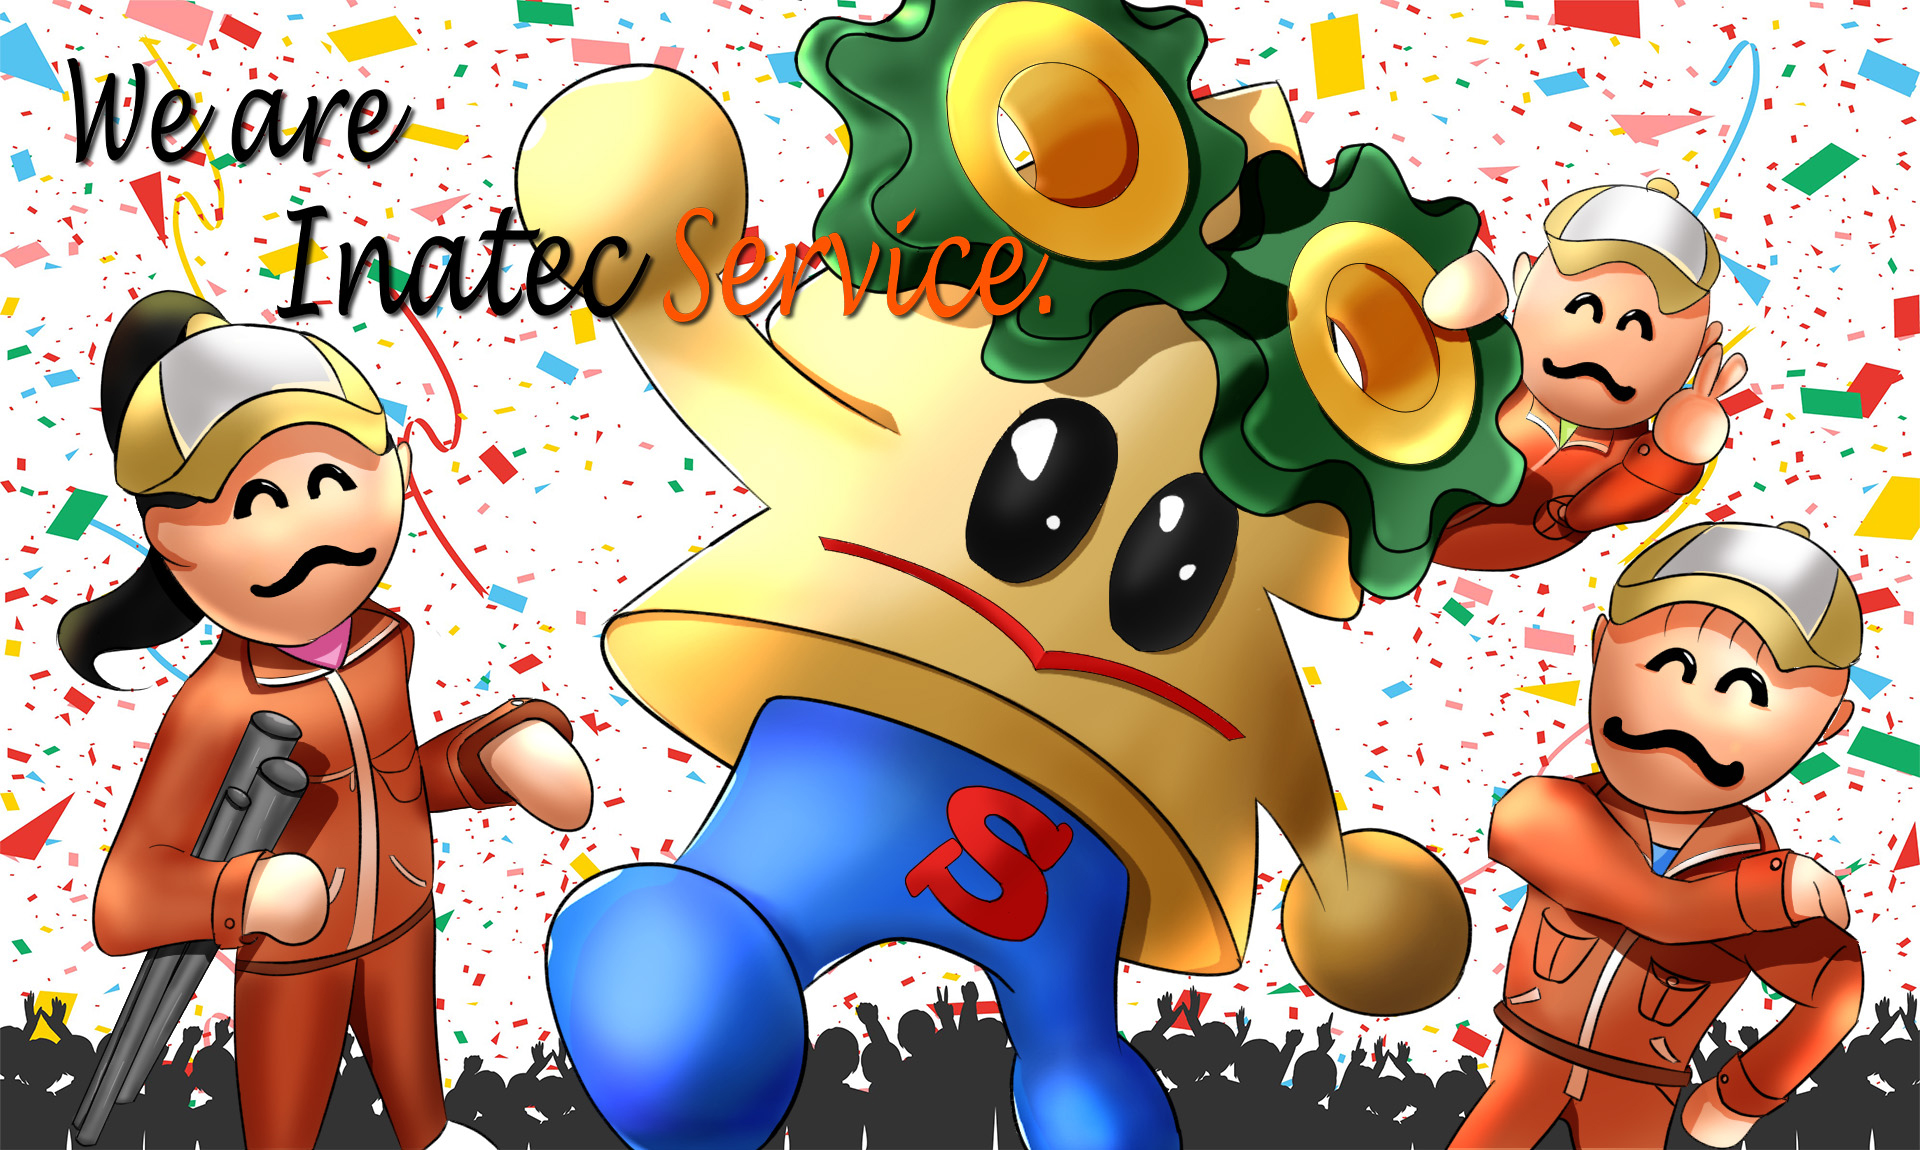 we are inatec.